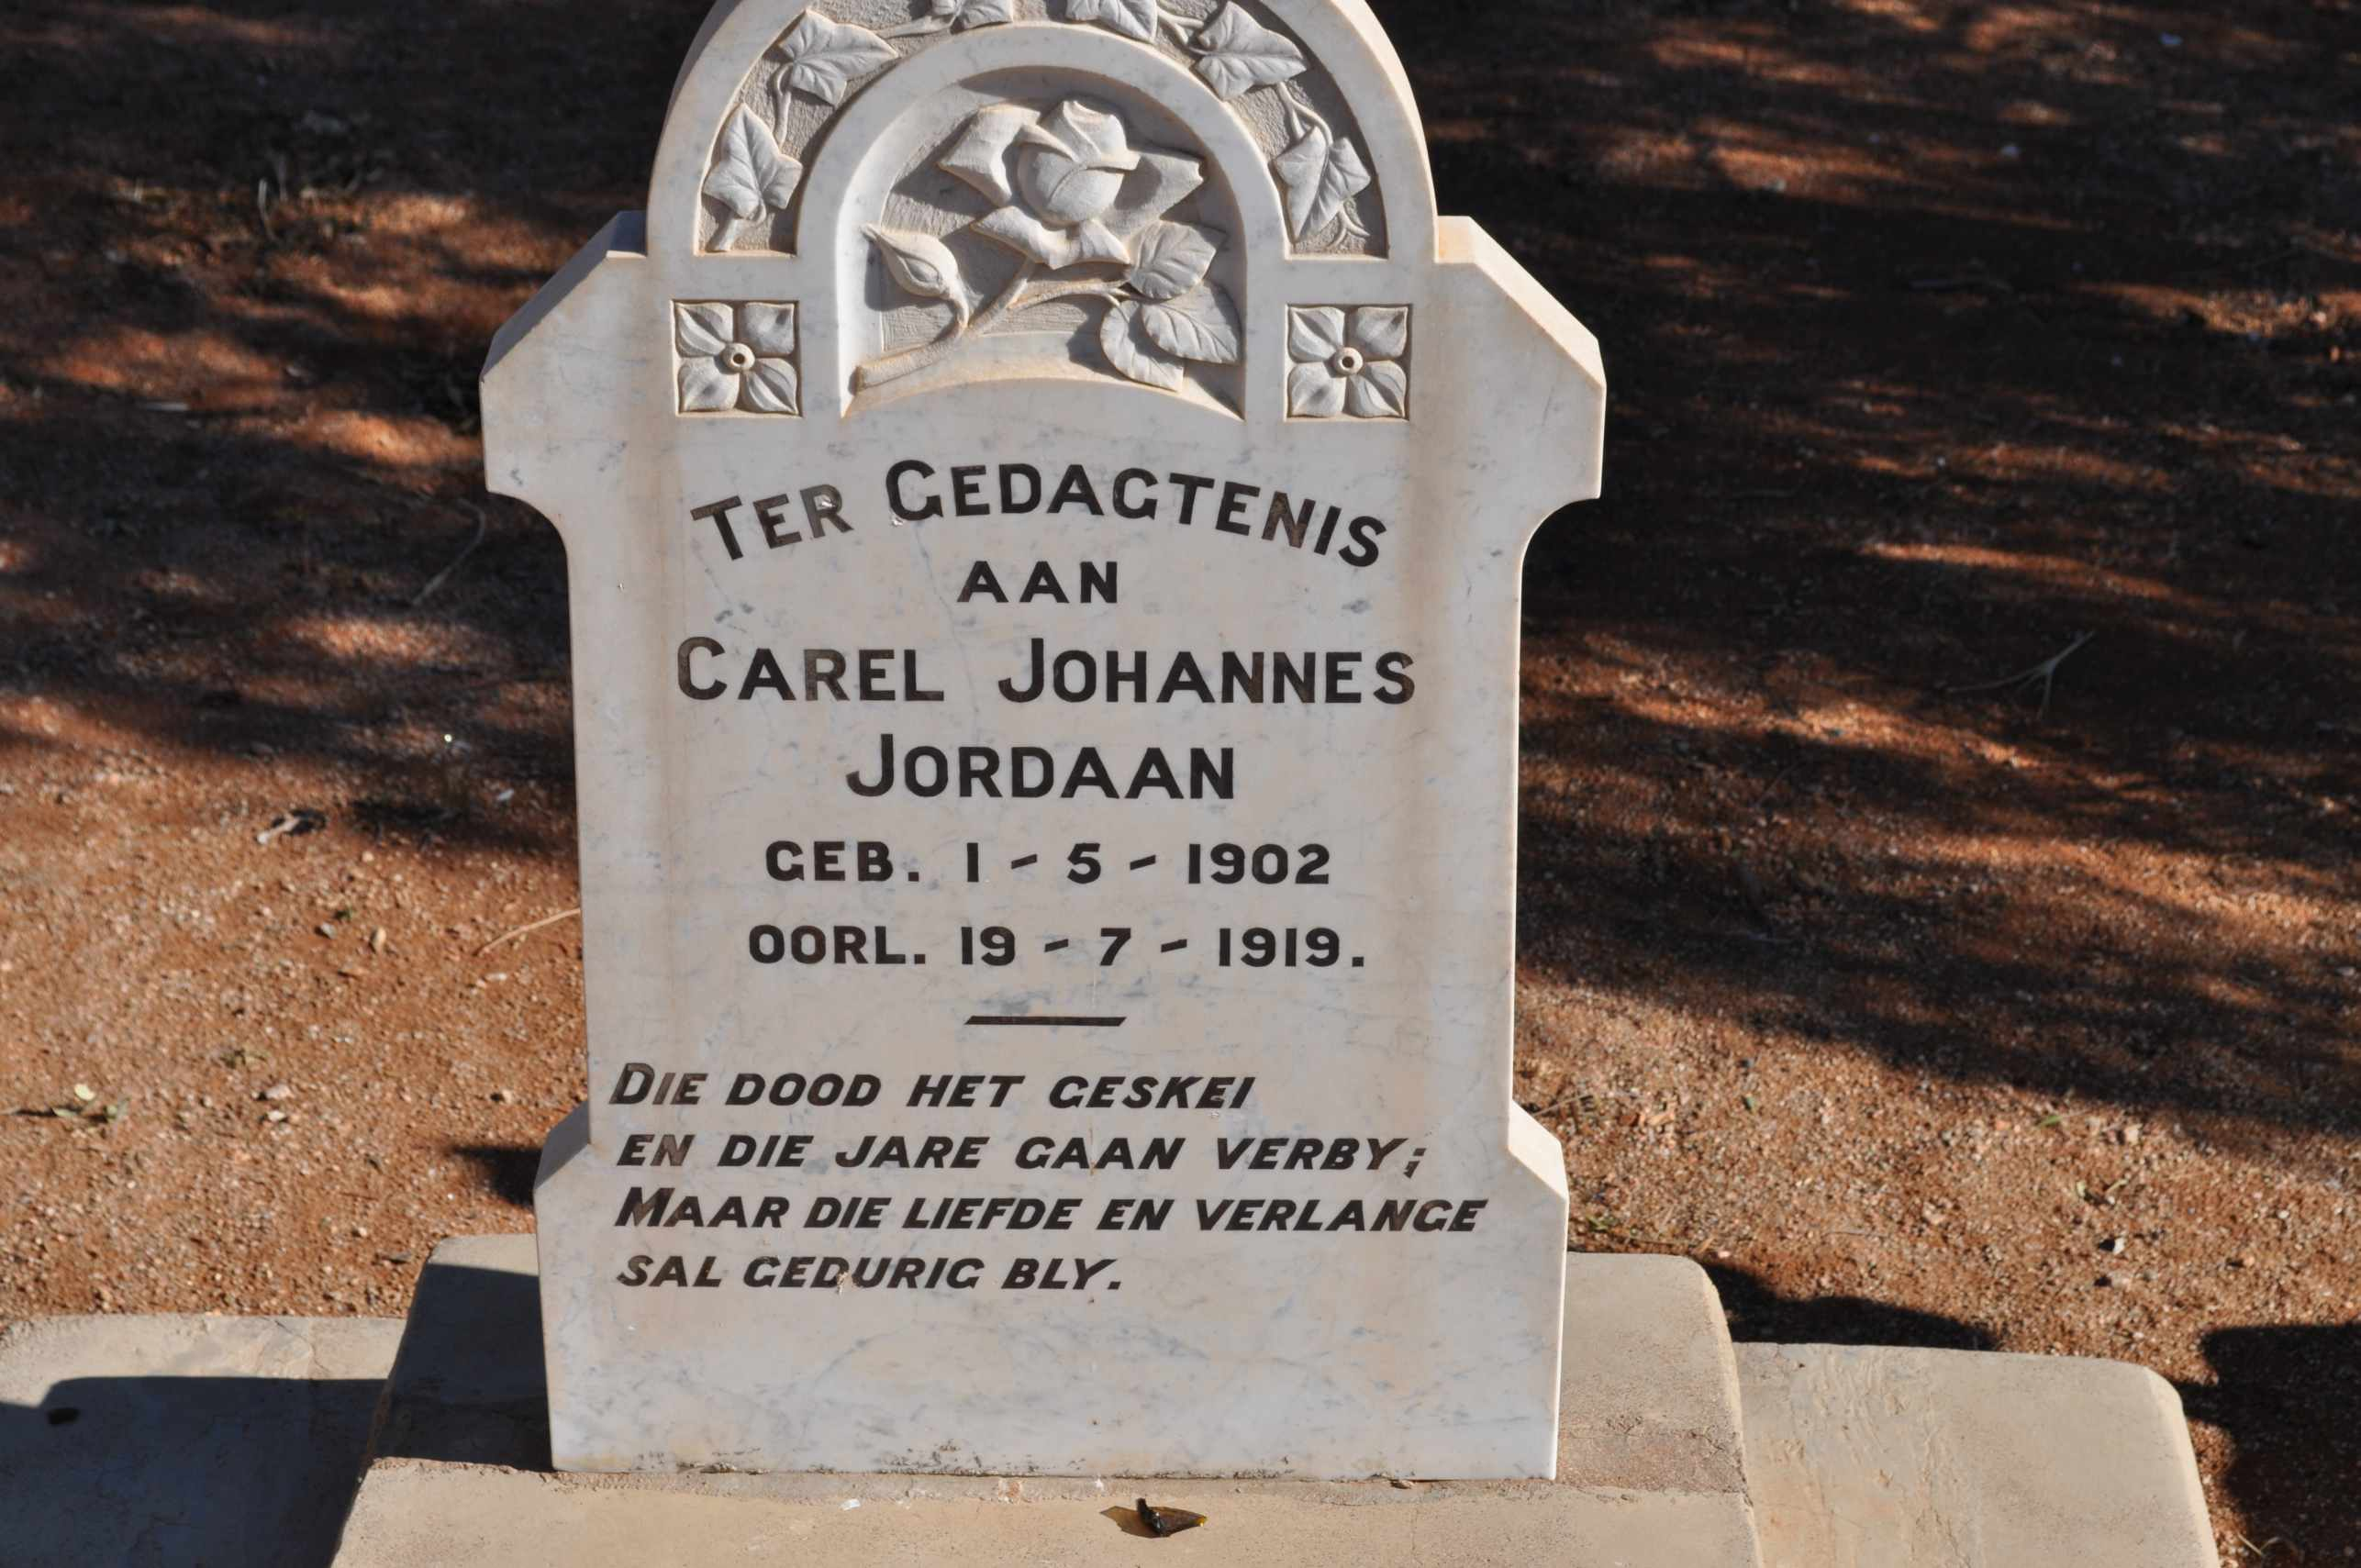 Jordaan, Carel Johannes